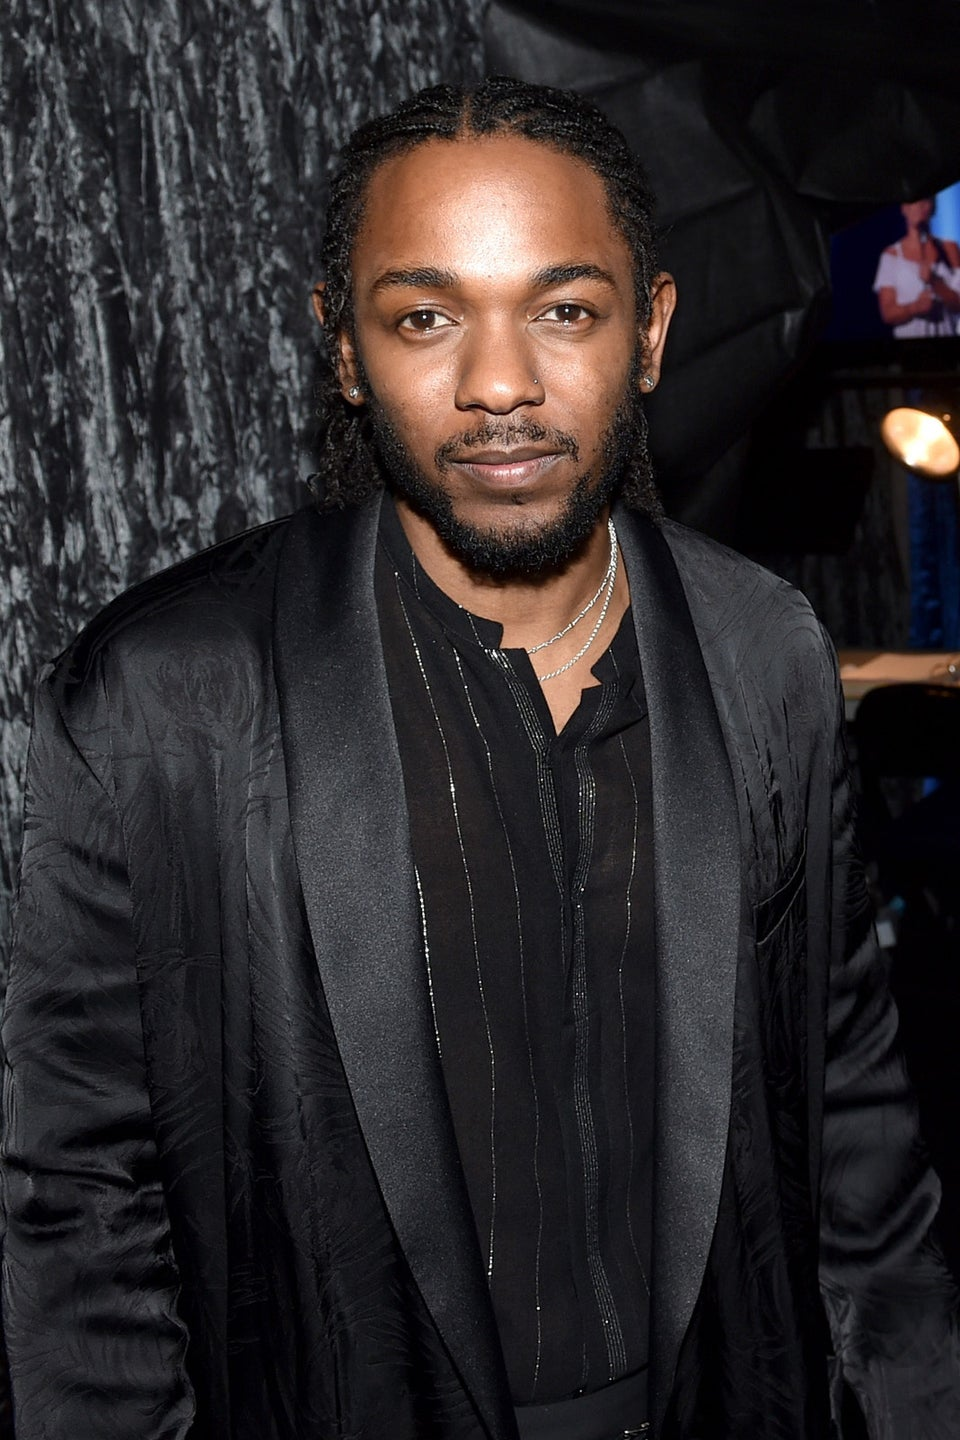 Kendrick Lamar Guest-Starred On 'Power' And Fans Loved It